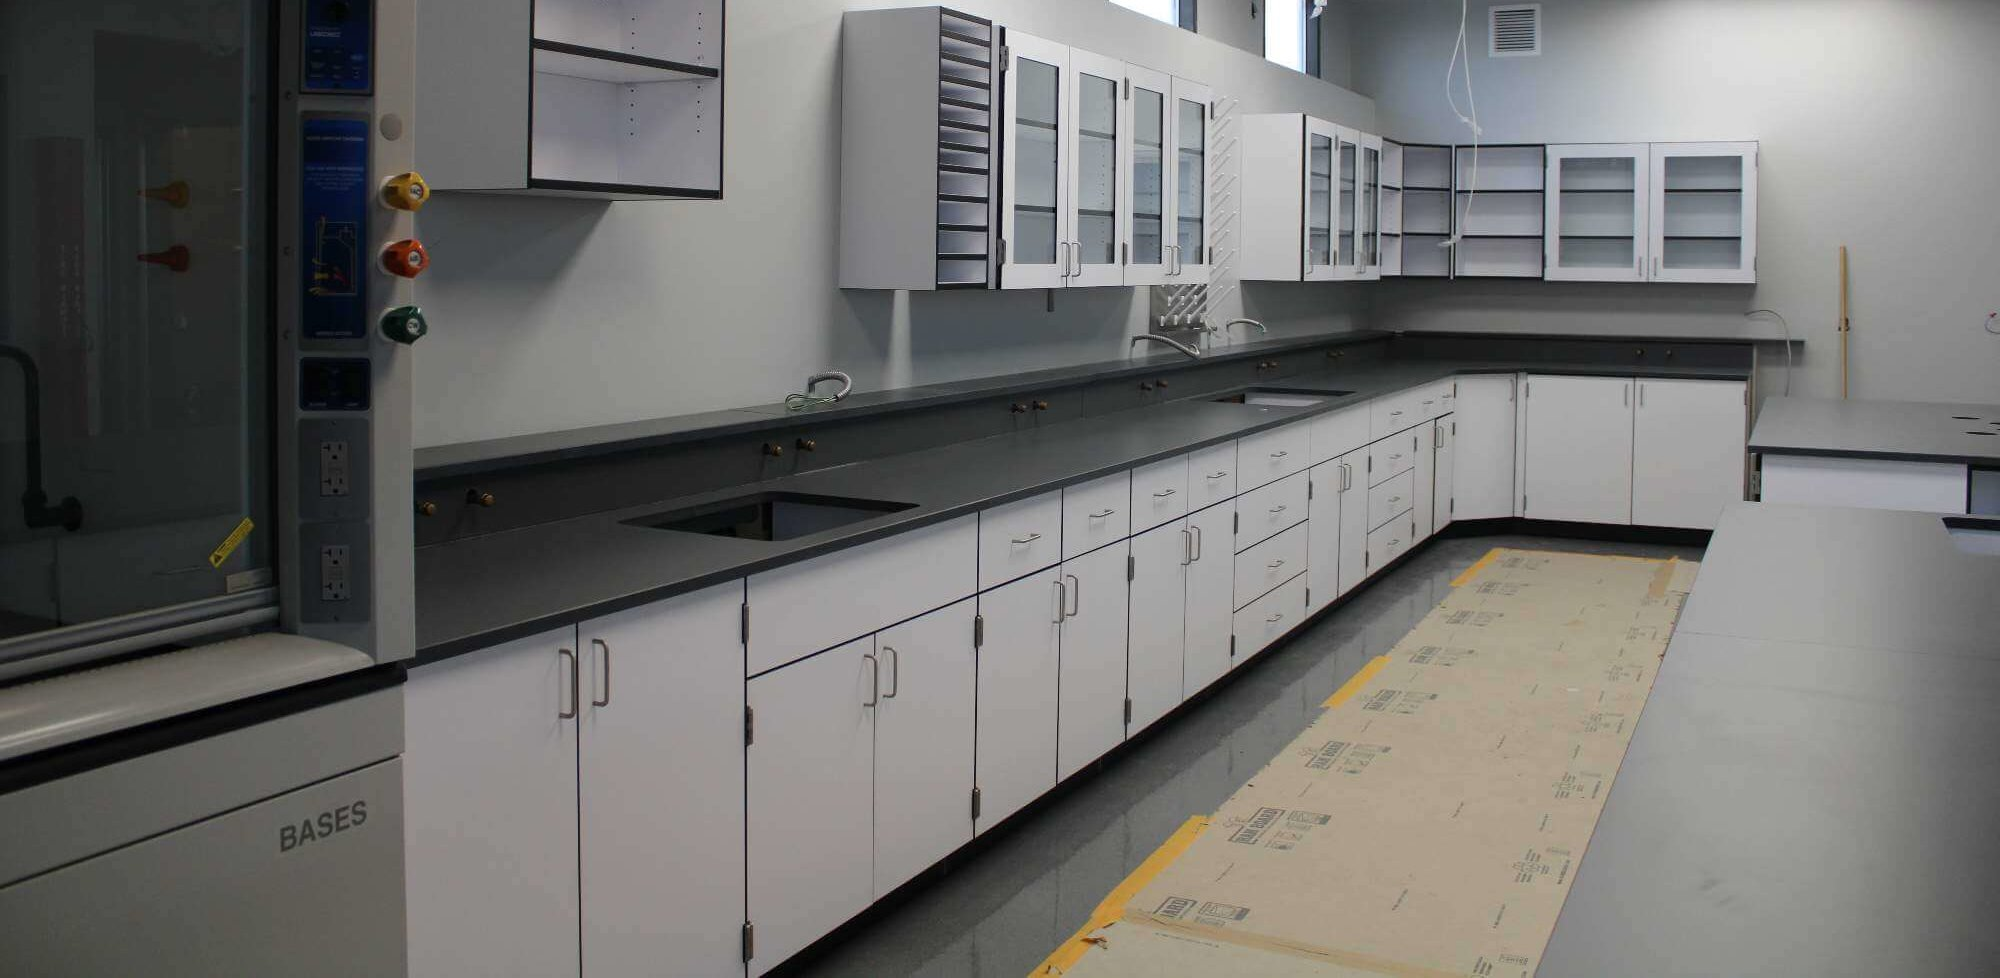 phenolic resin casework